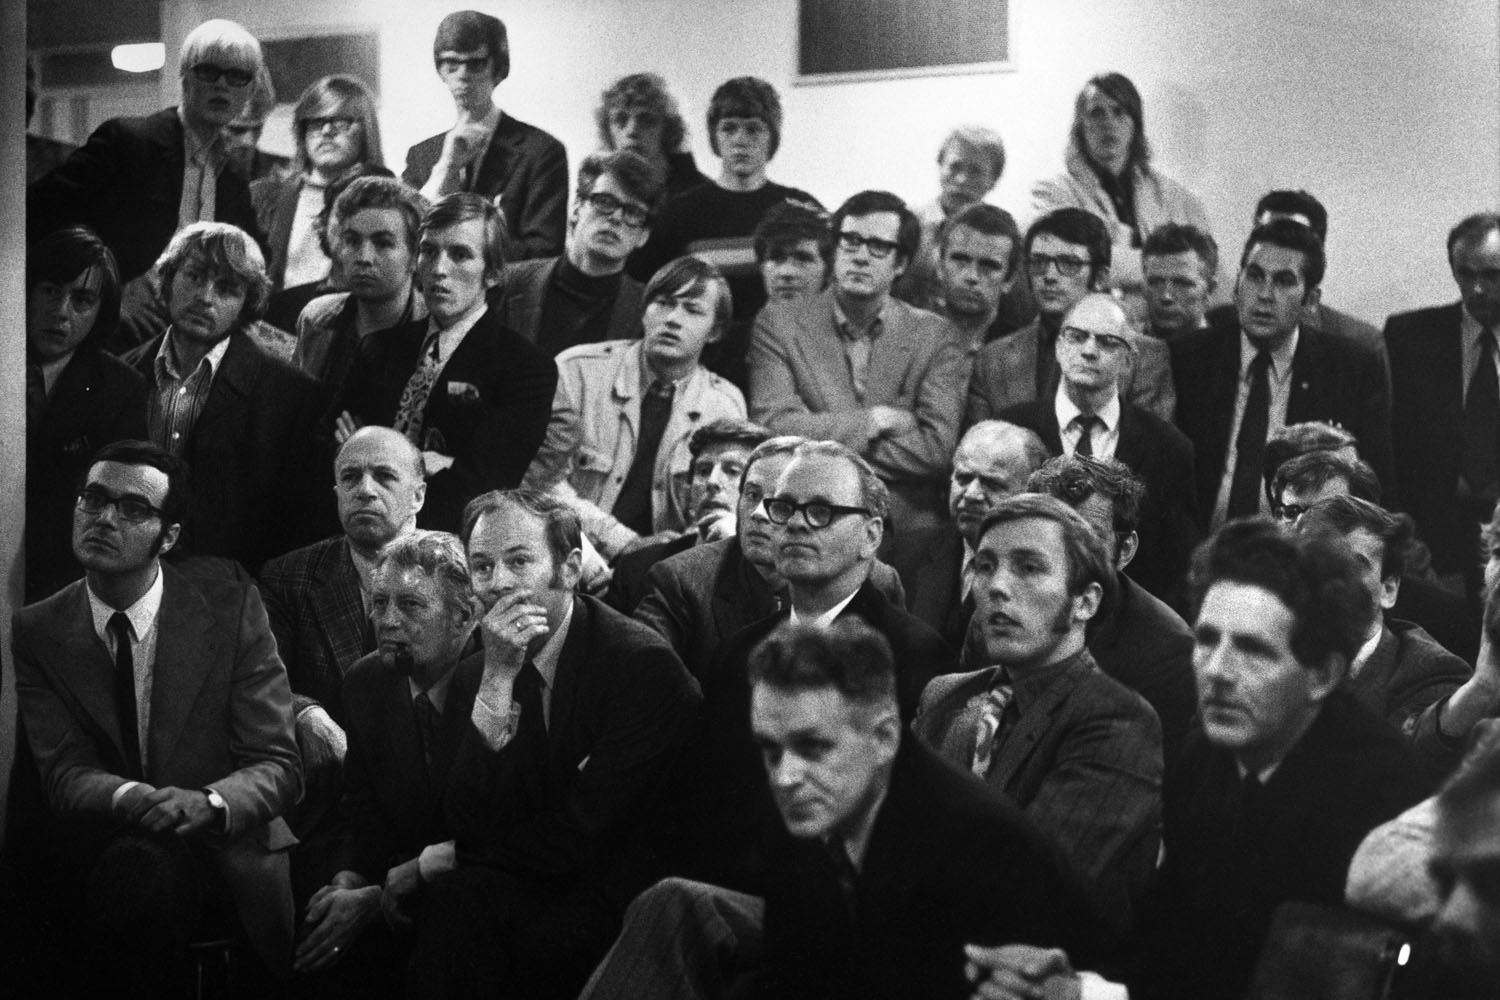 A crowd watches the Fischer and Spassky battle on a television screen in Iceland, 1972